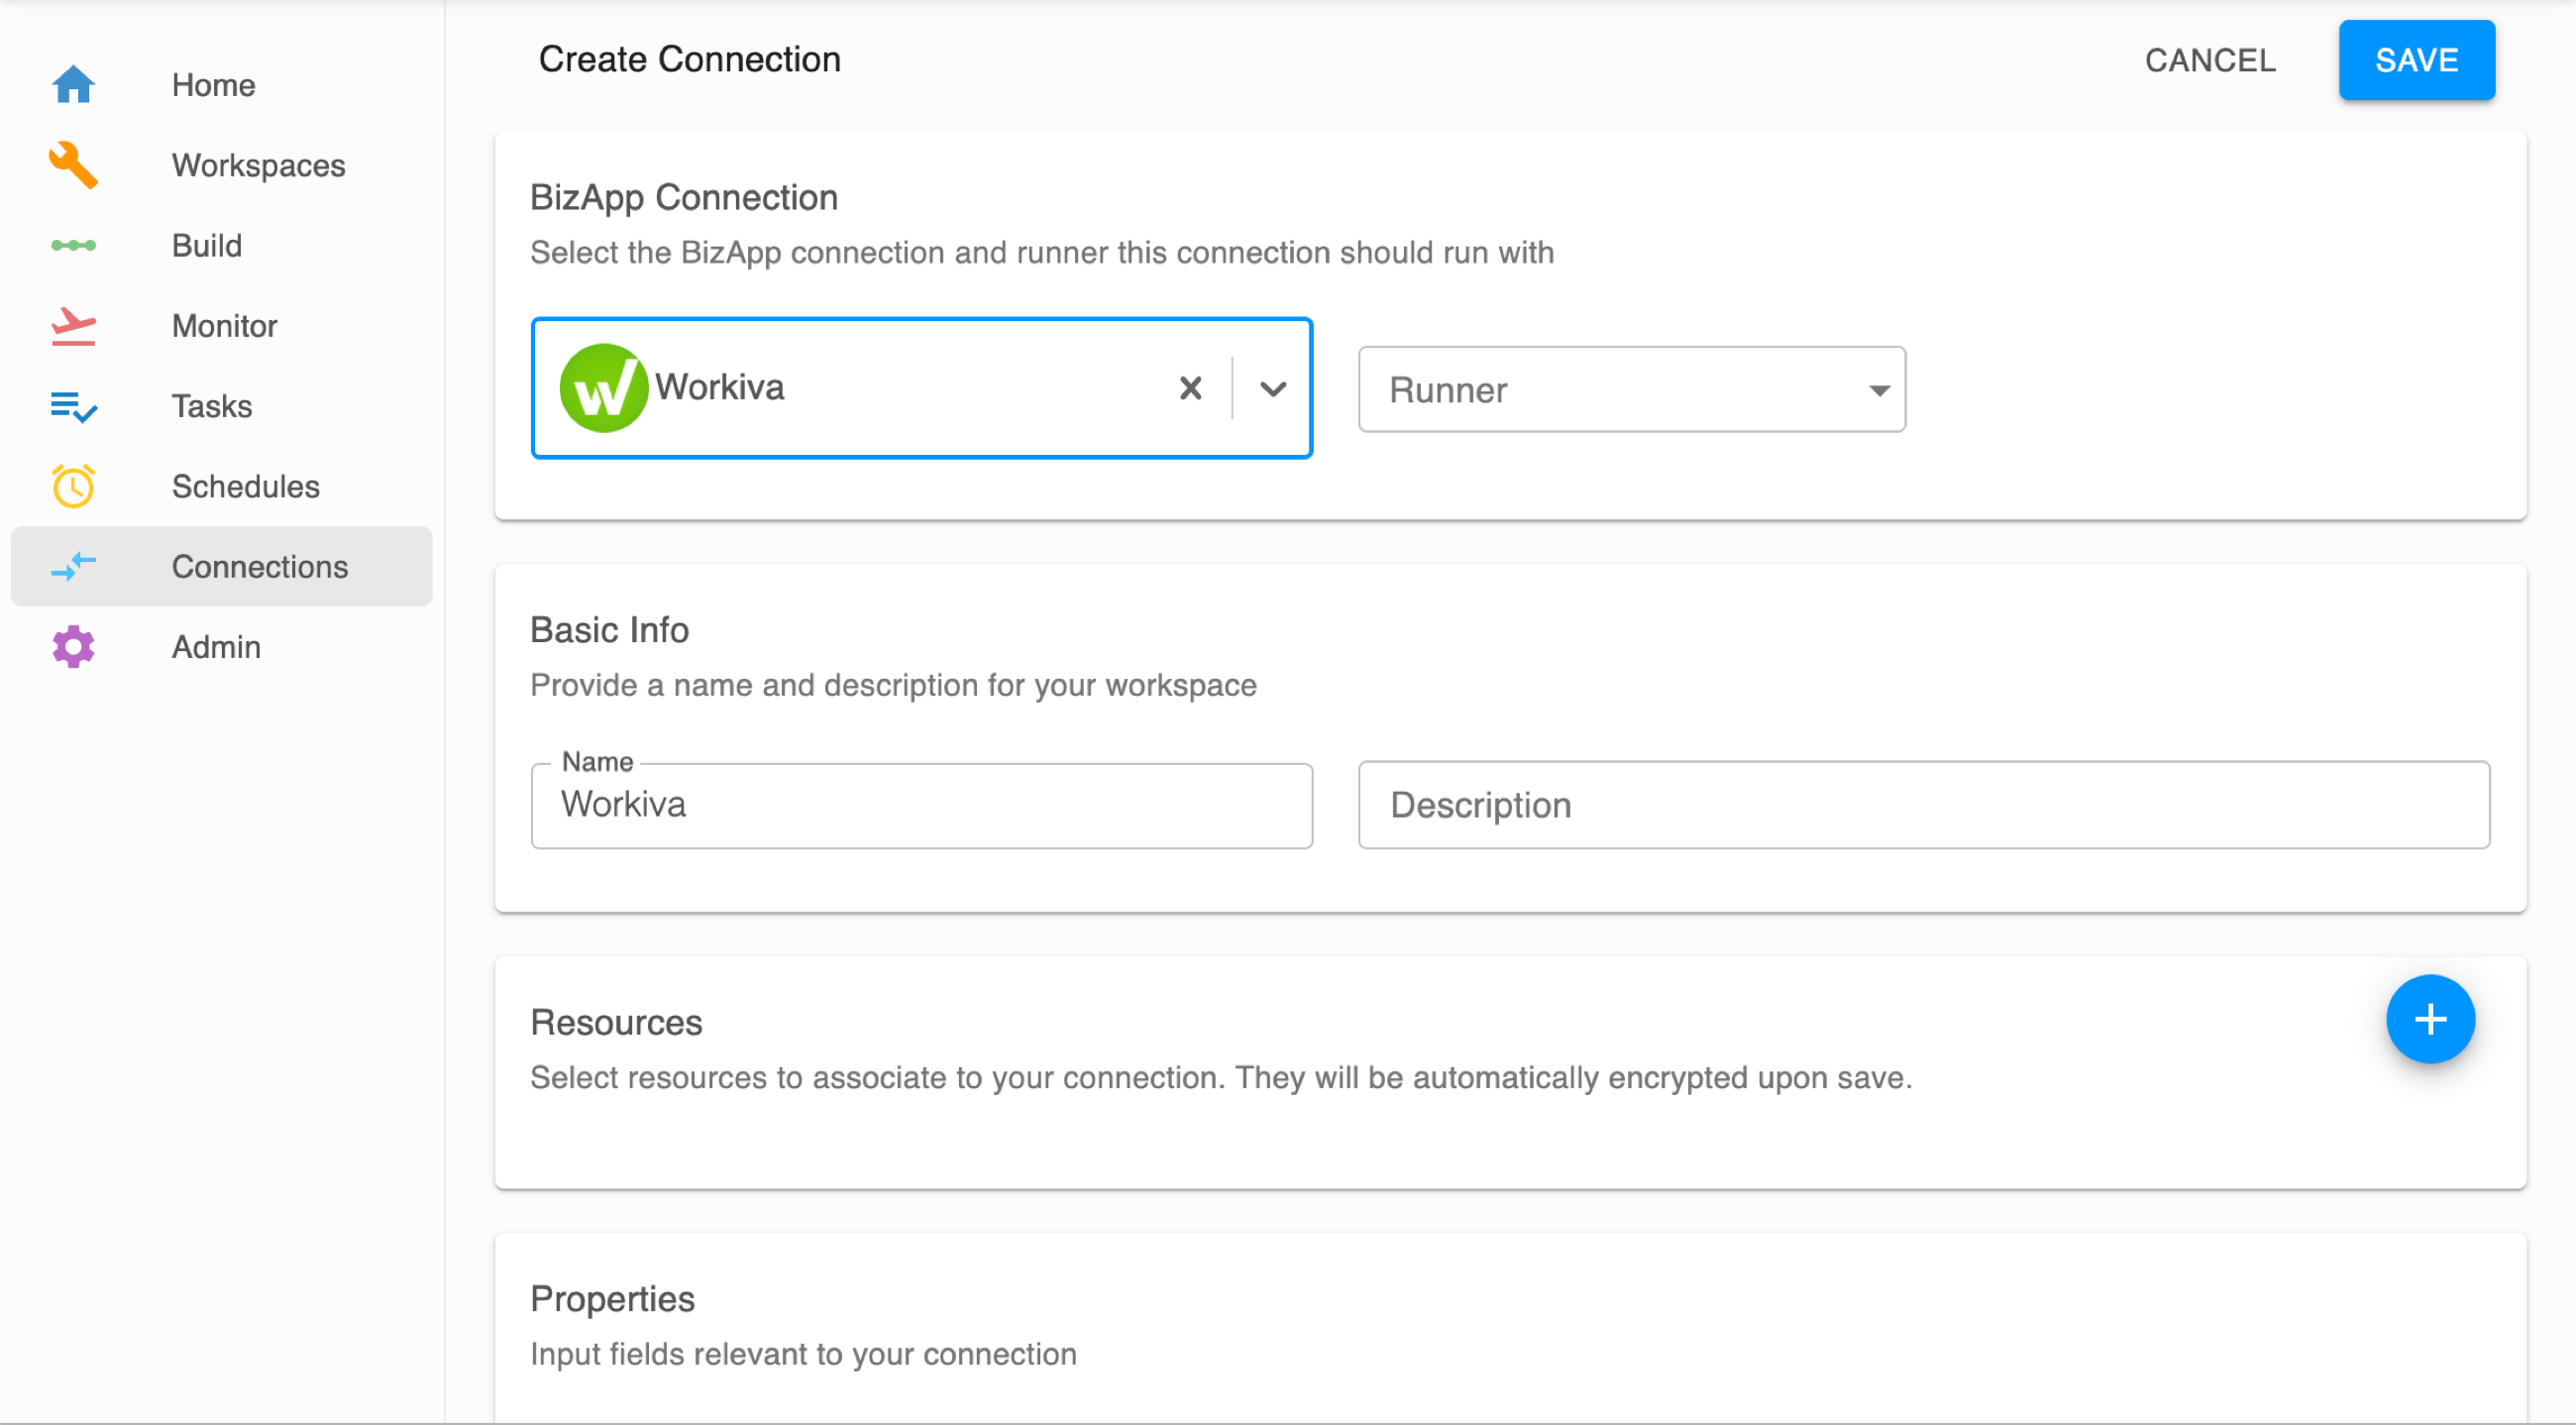 Create Connection with Workiva BizApp connection